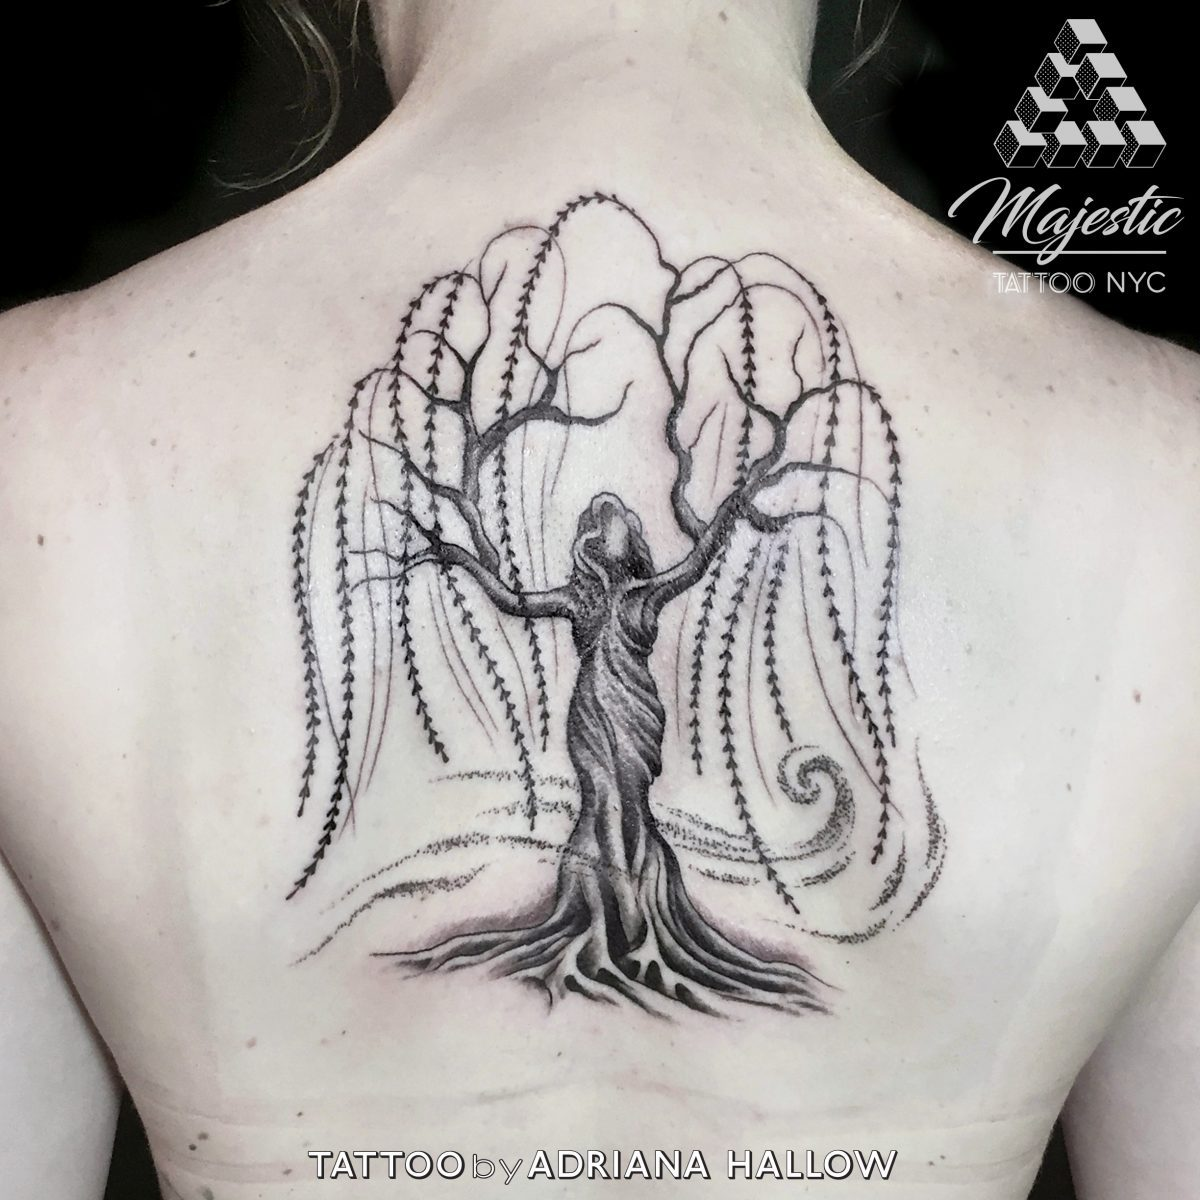 Tattoos By Adriana Hallow